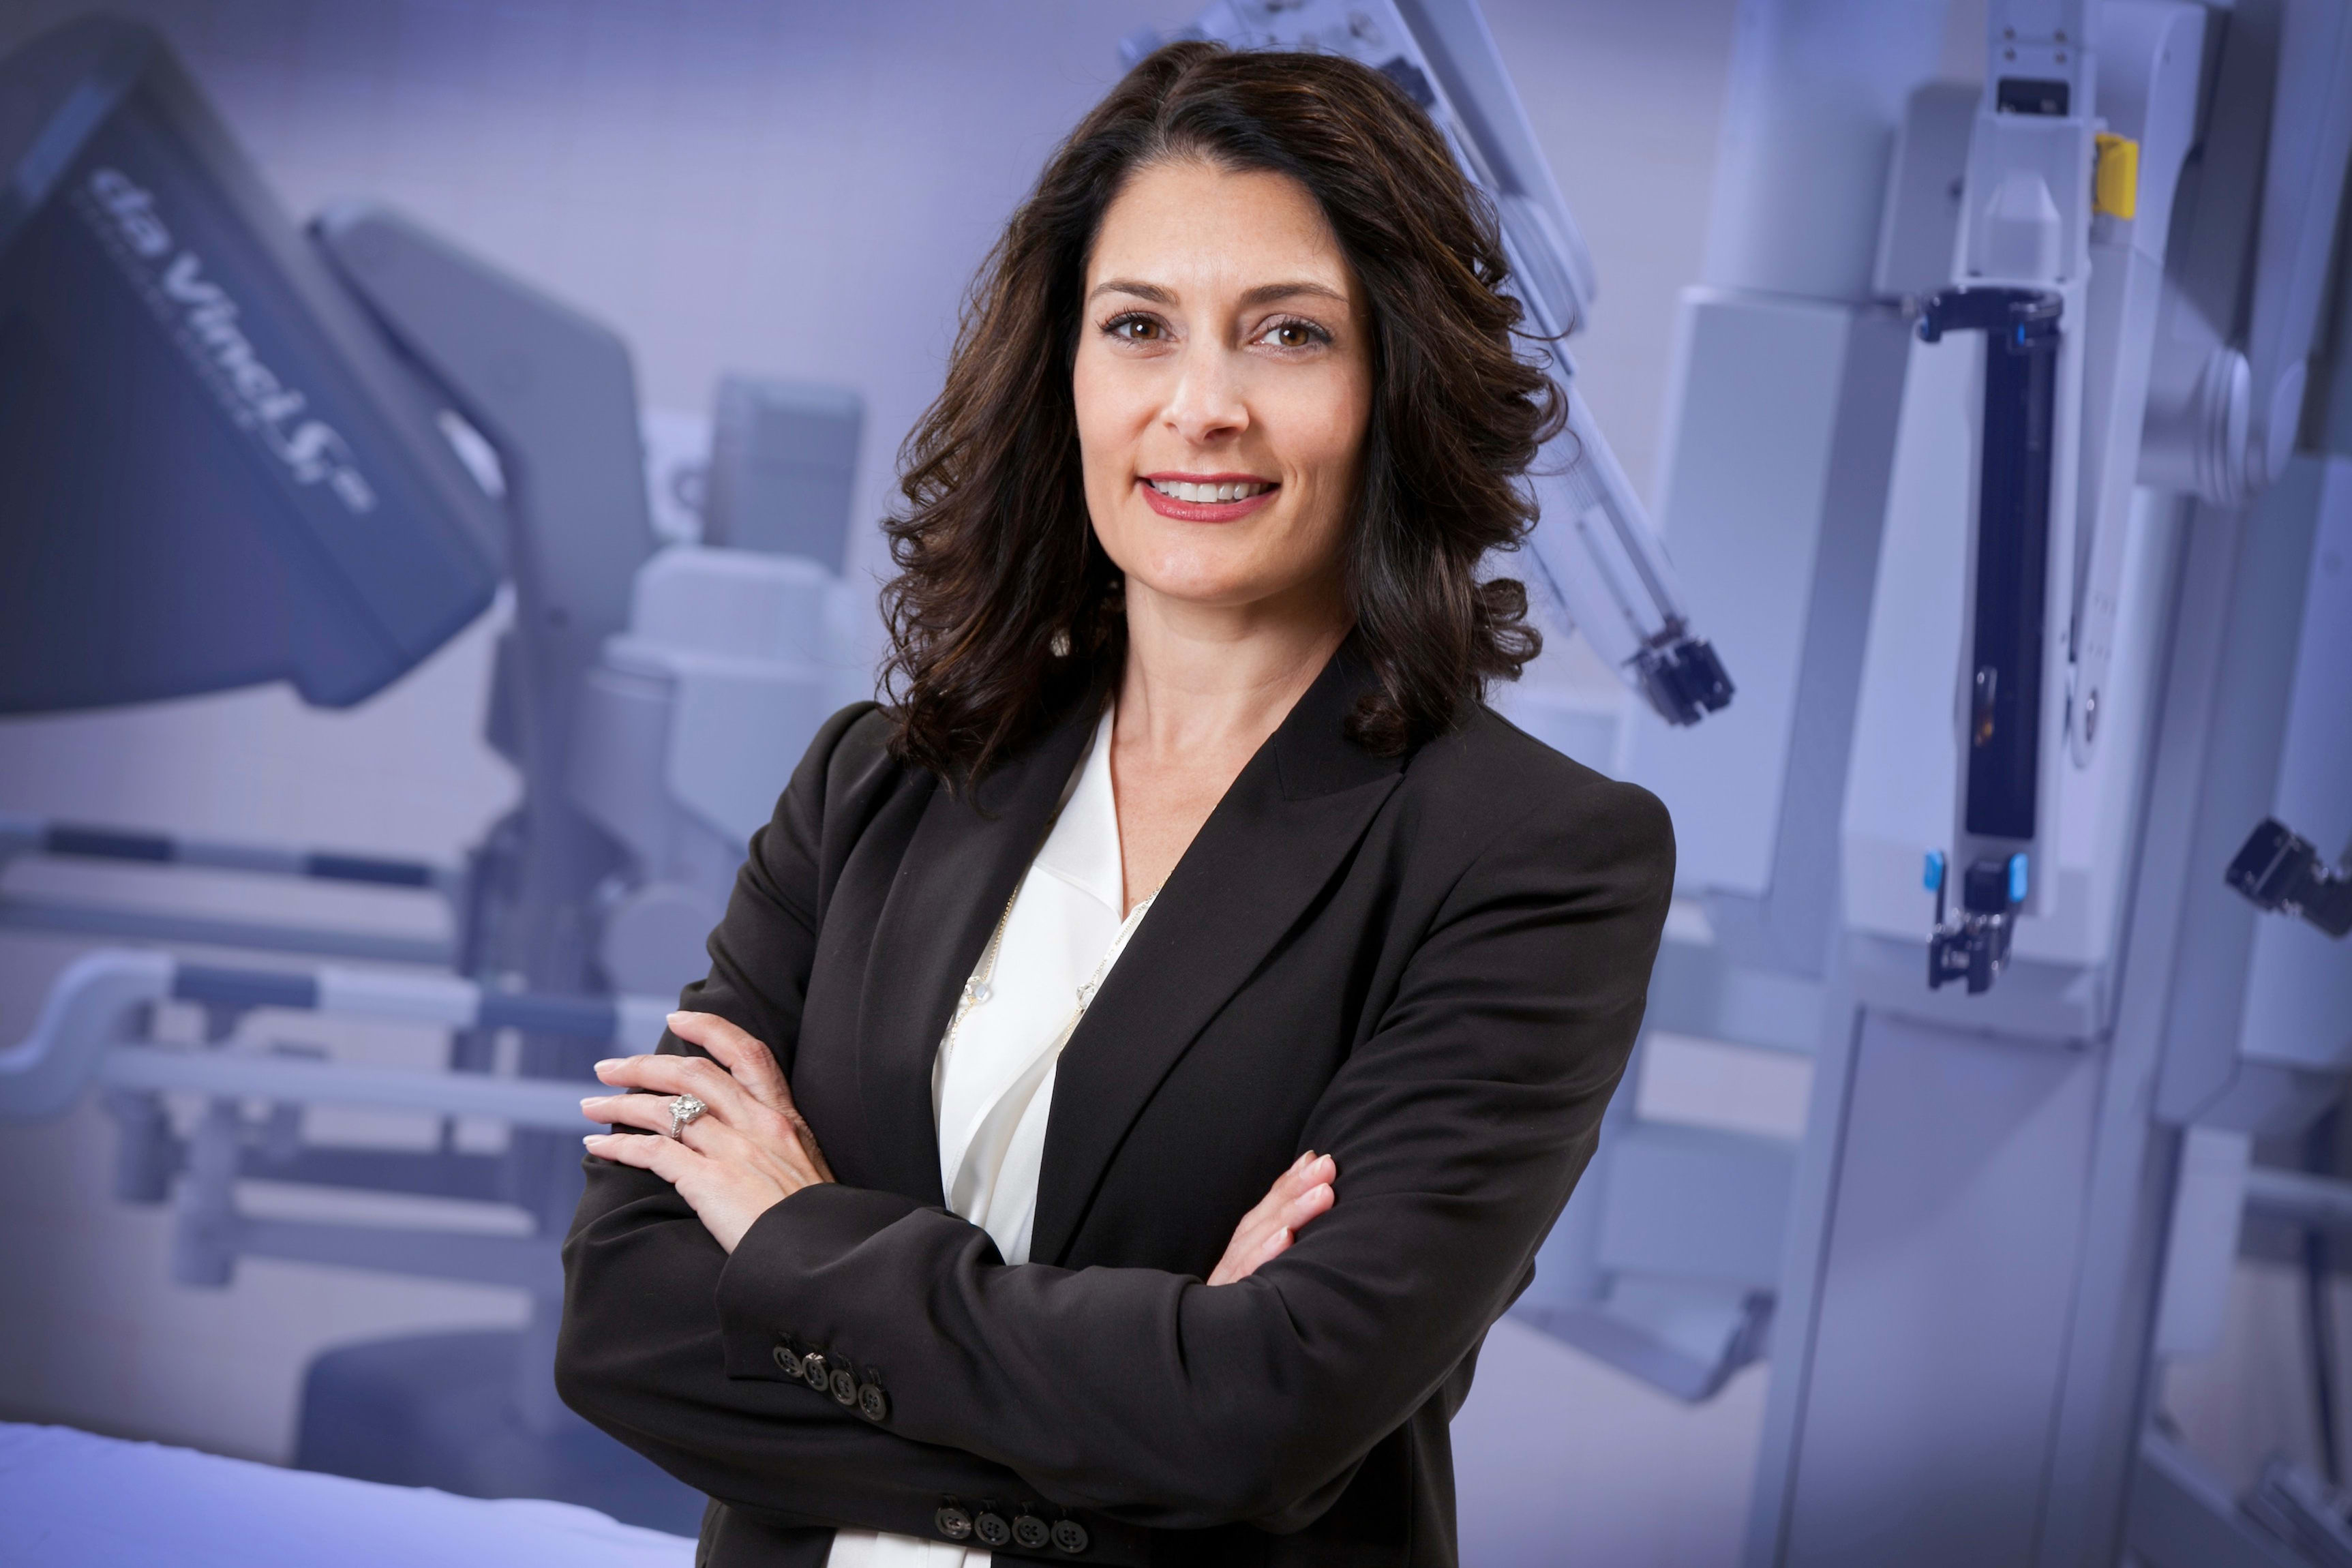 Dr. Michelle Luthringshausen MD